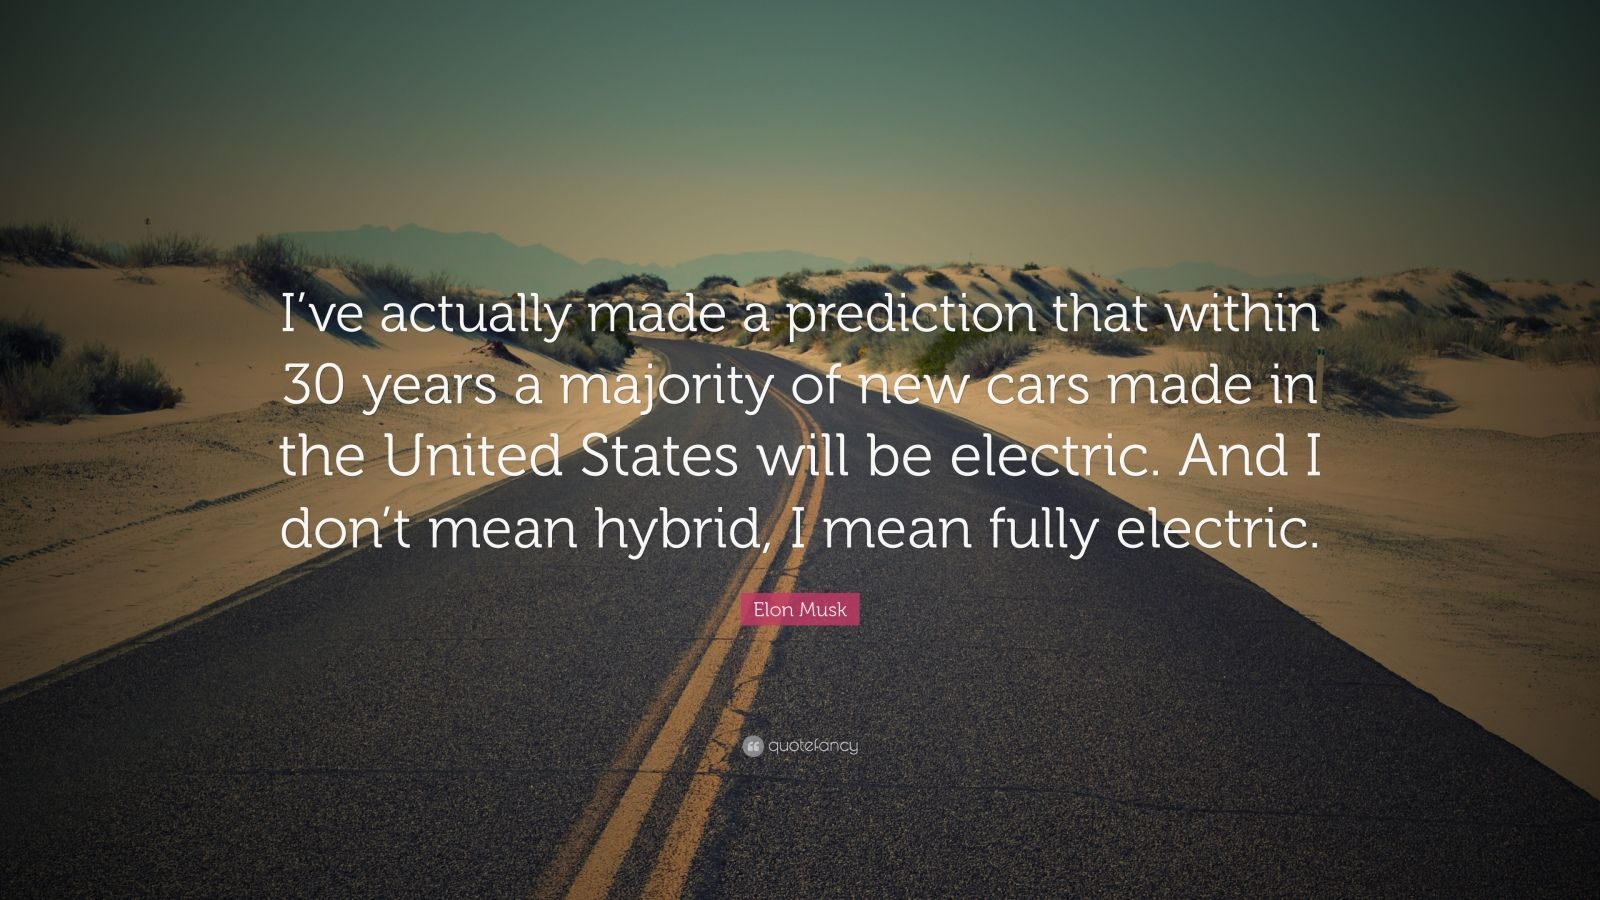 "Elon Musk Quote: ""I've actually made a prediction that within 30 years a majority of new cars made in the United States will be electric. And I don't mean hybrid, I mean fully electric."""